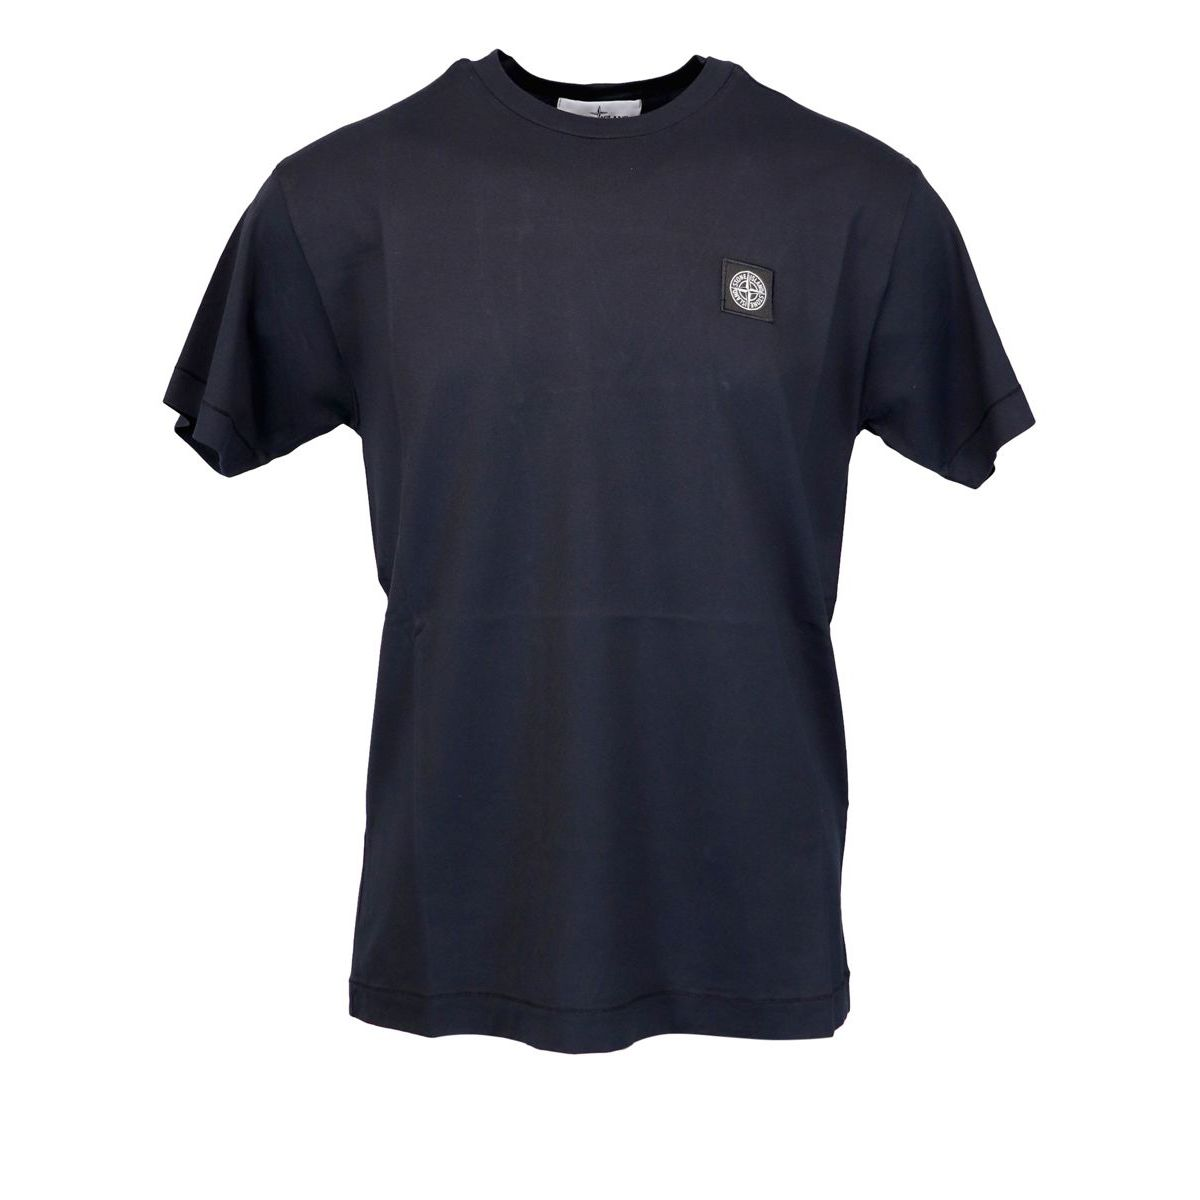 Cotton t-shirt with small logo Black Stone Island